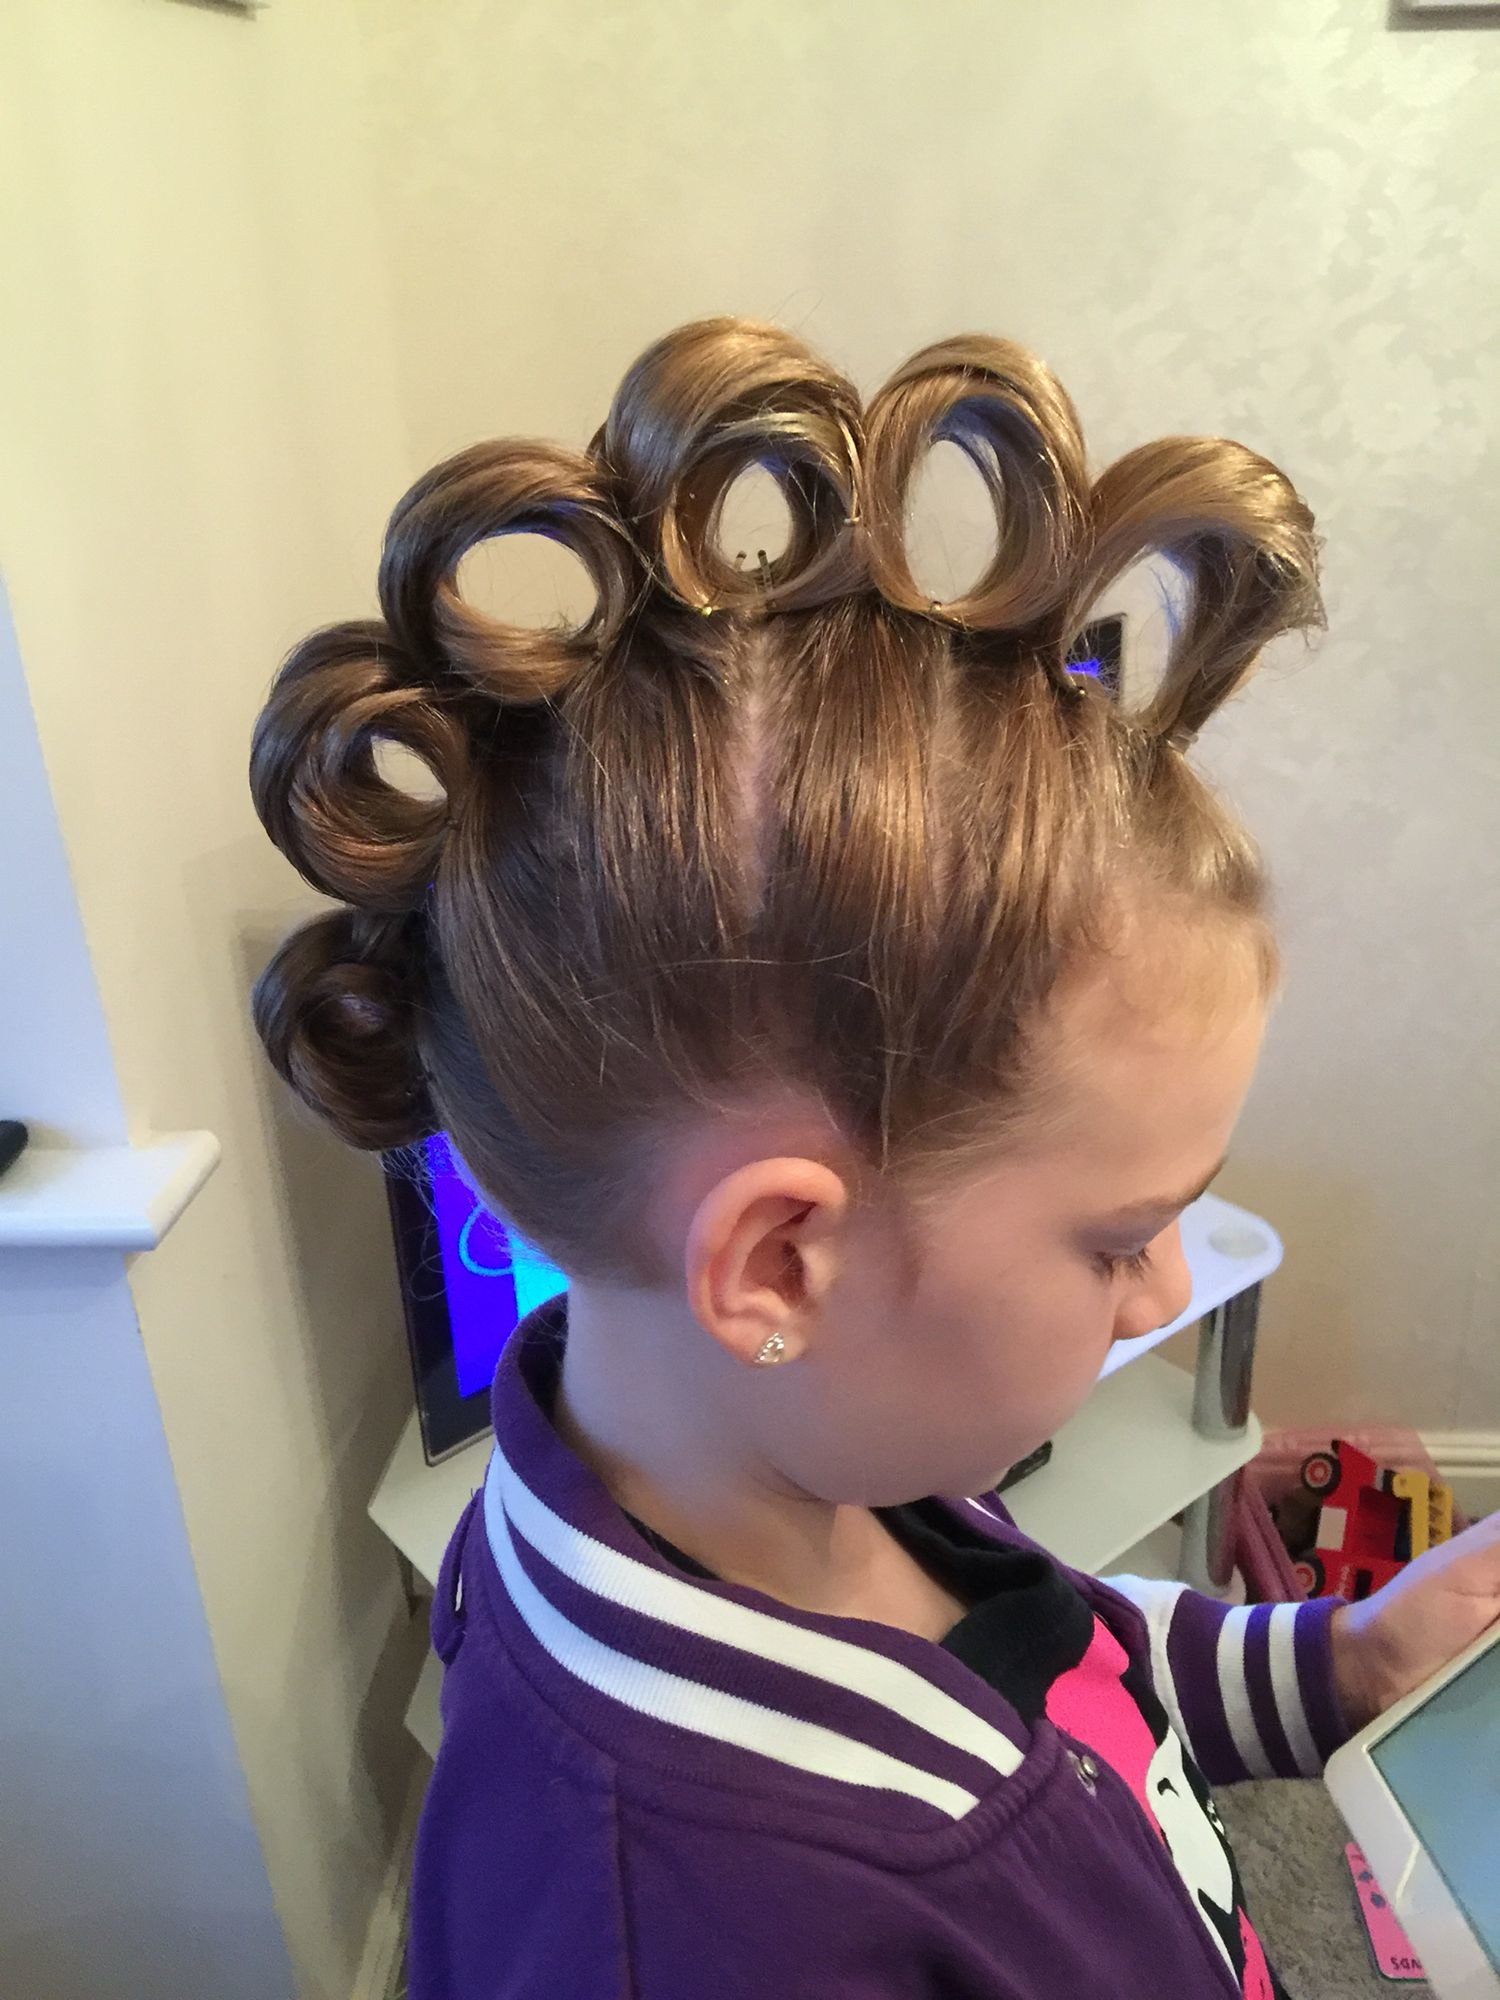 Free Rolling Mohawk For Crazy Hair Day Hair Crazy Hair Days Wallpaper